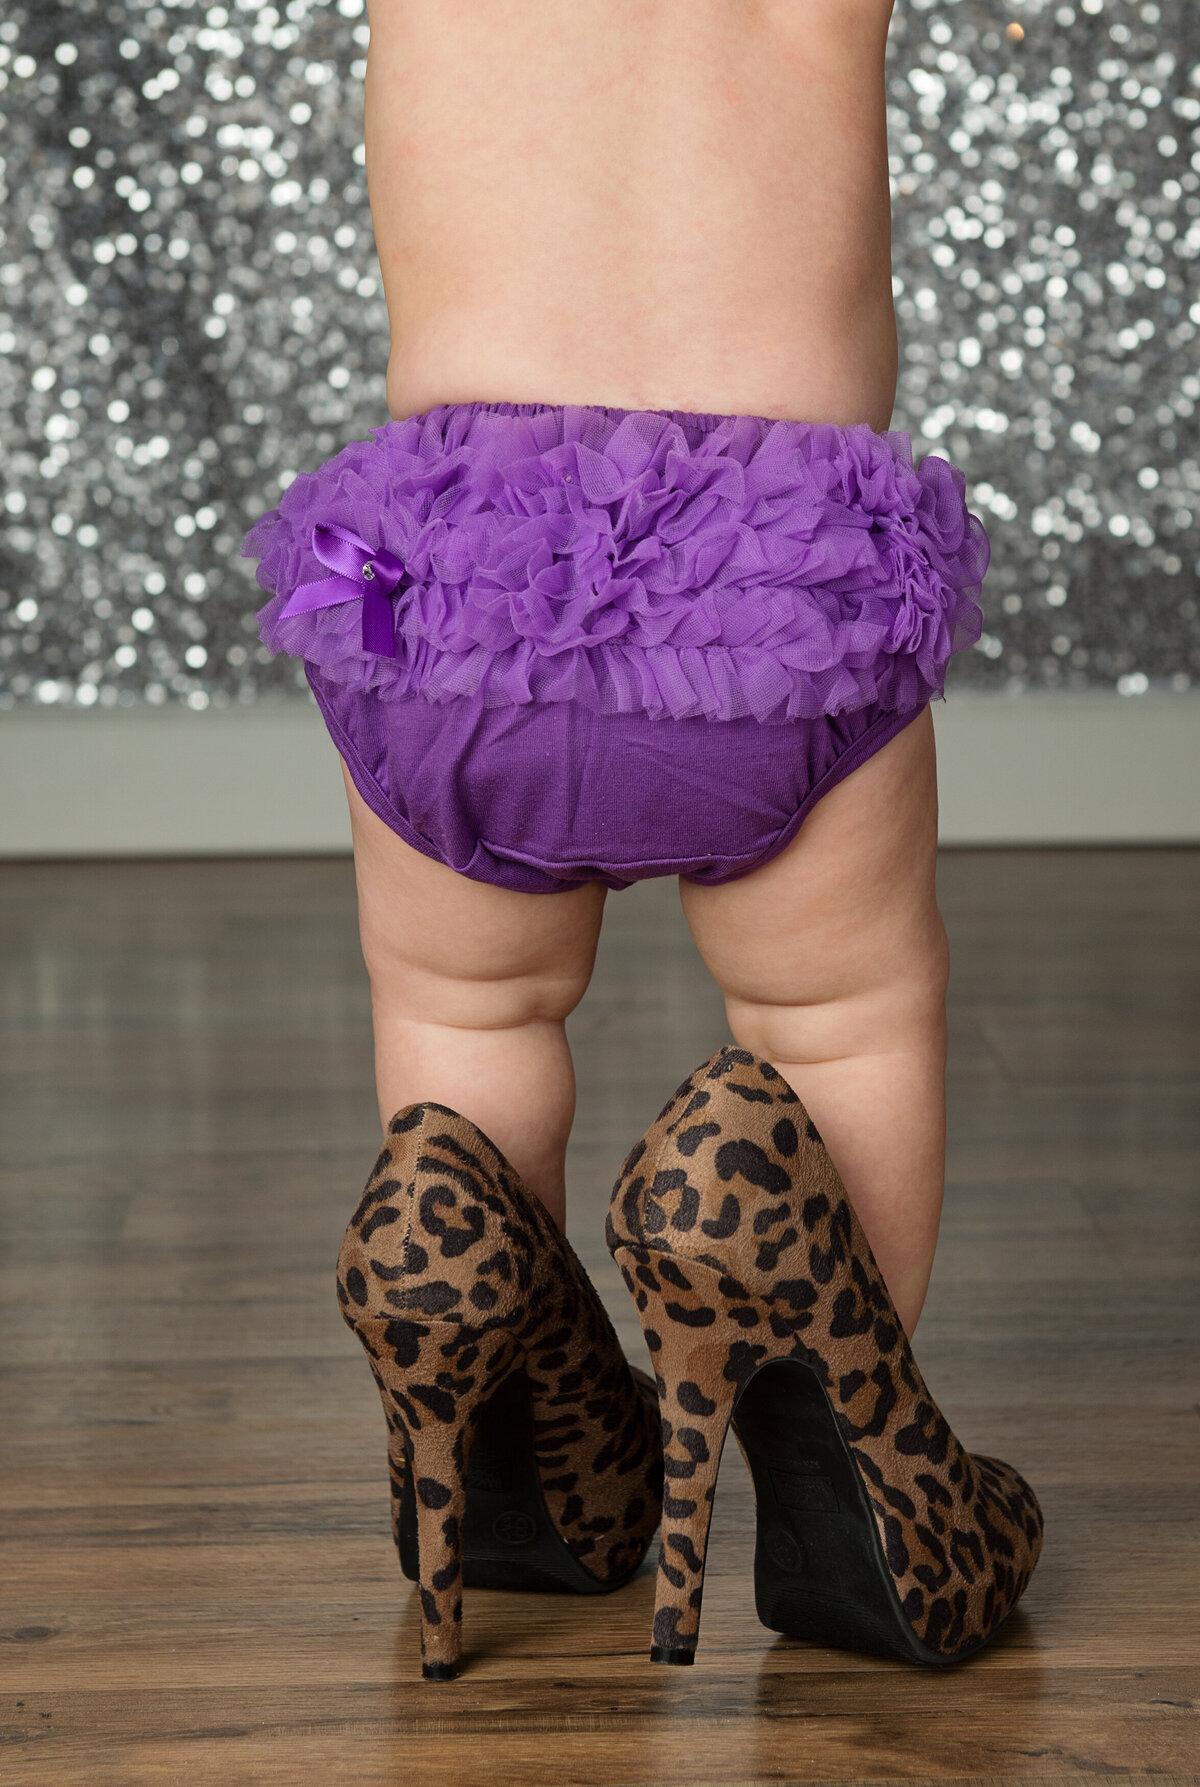 baby in purple diaper cover with high heels